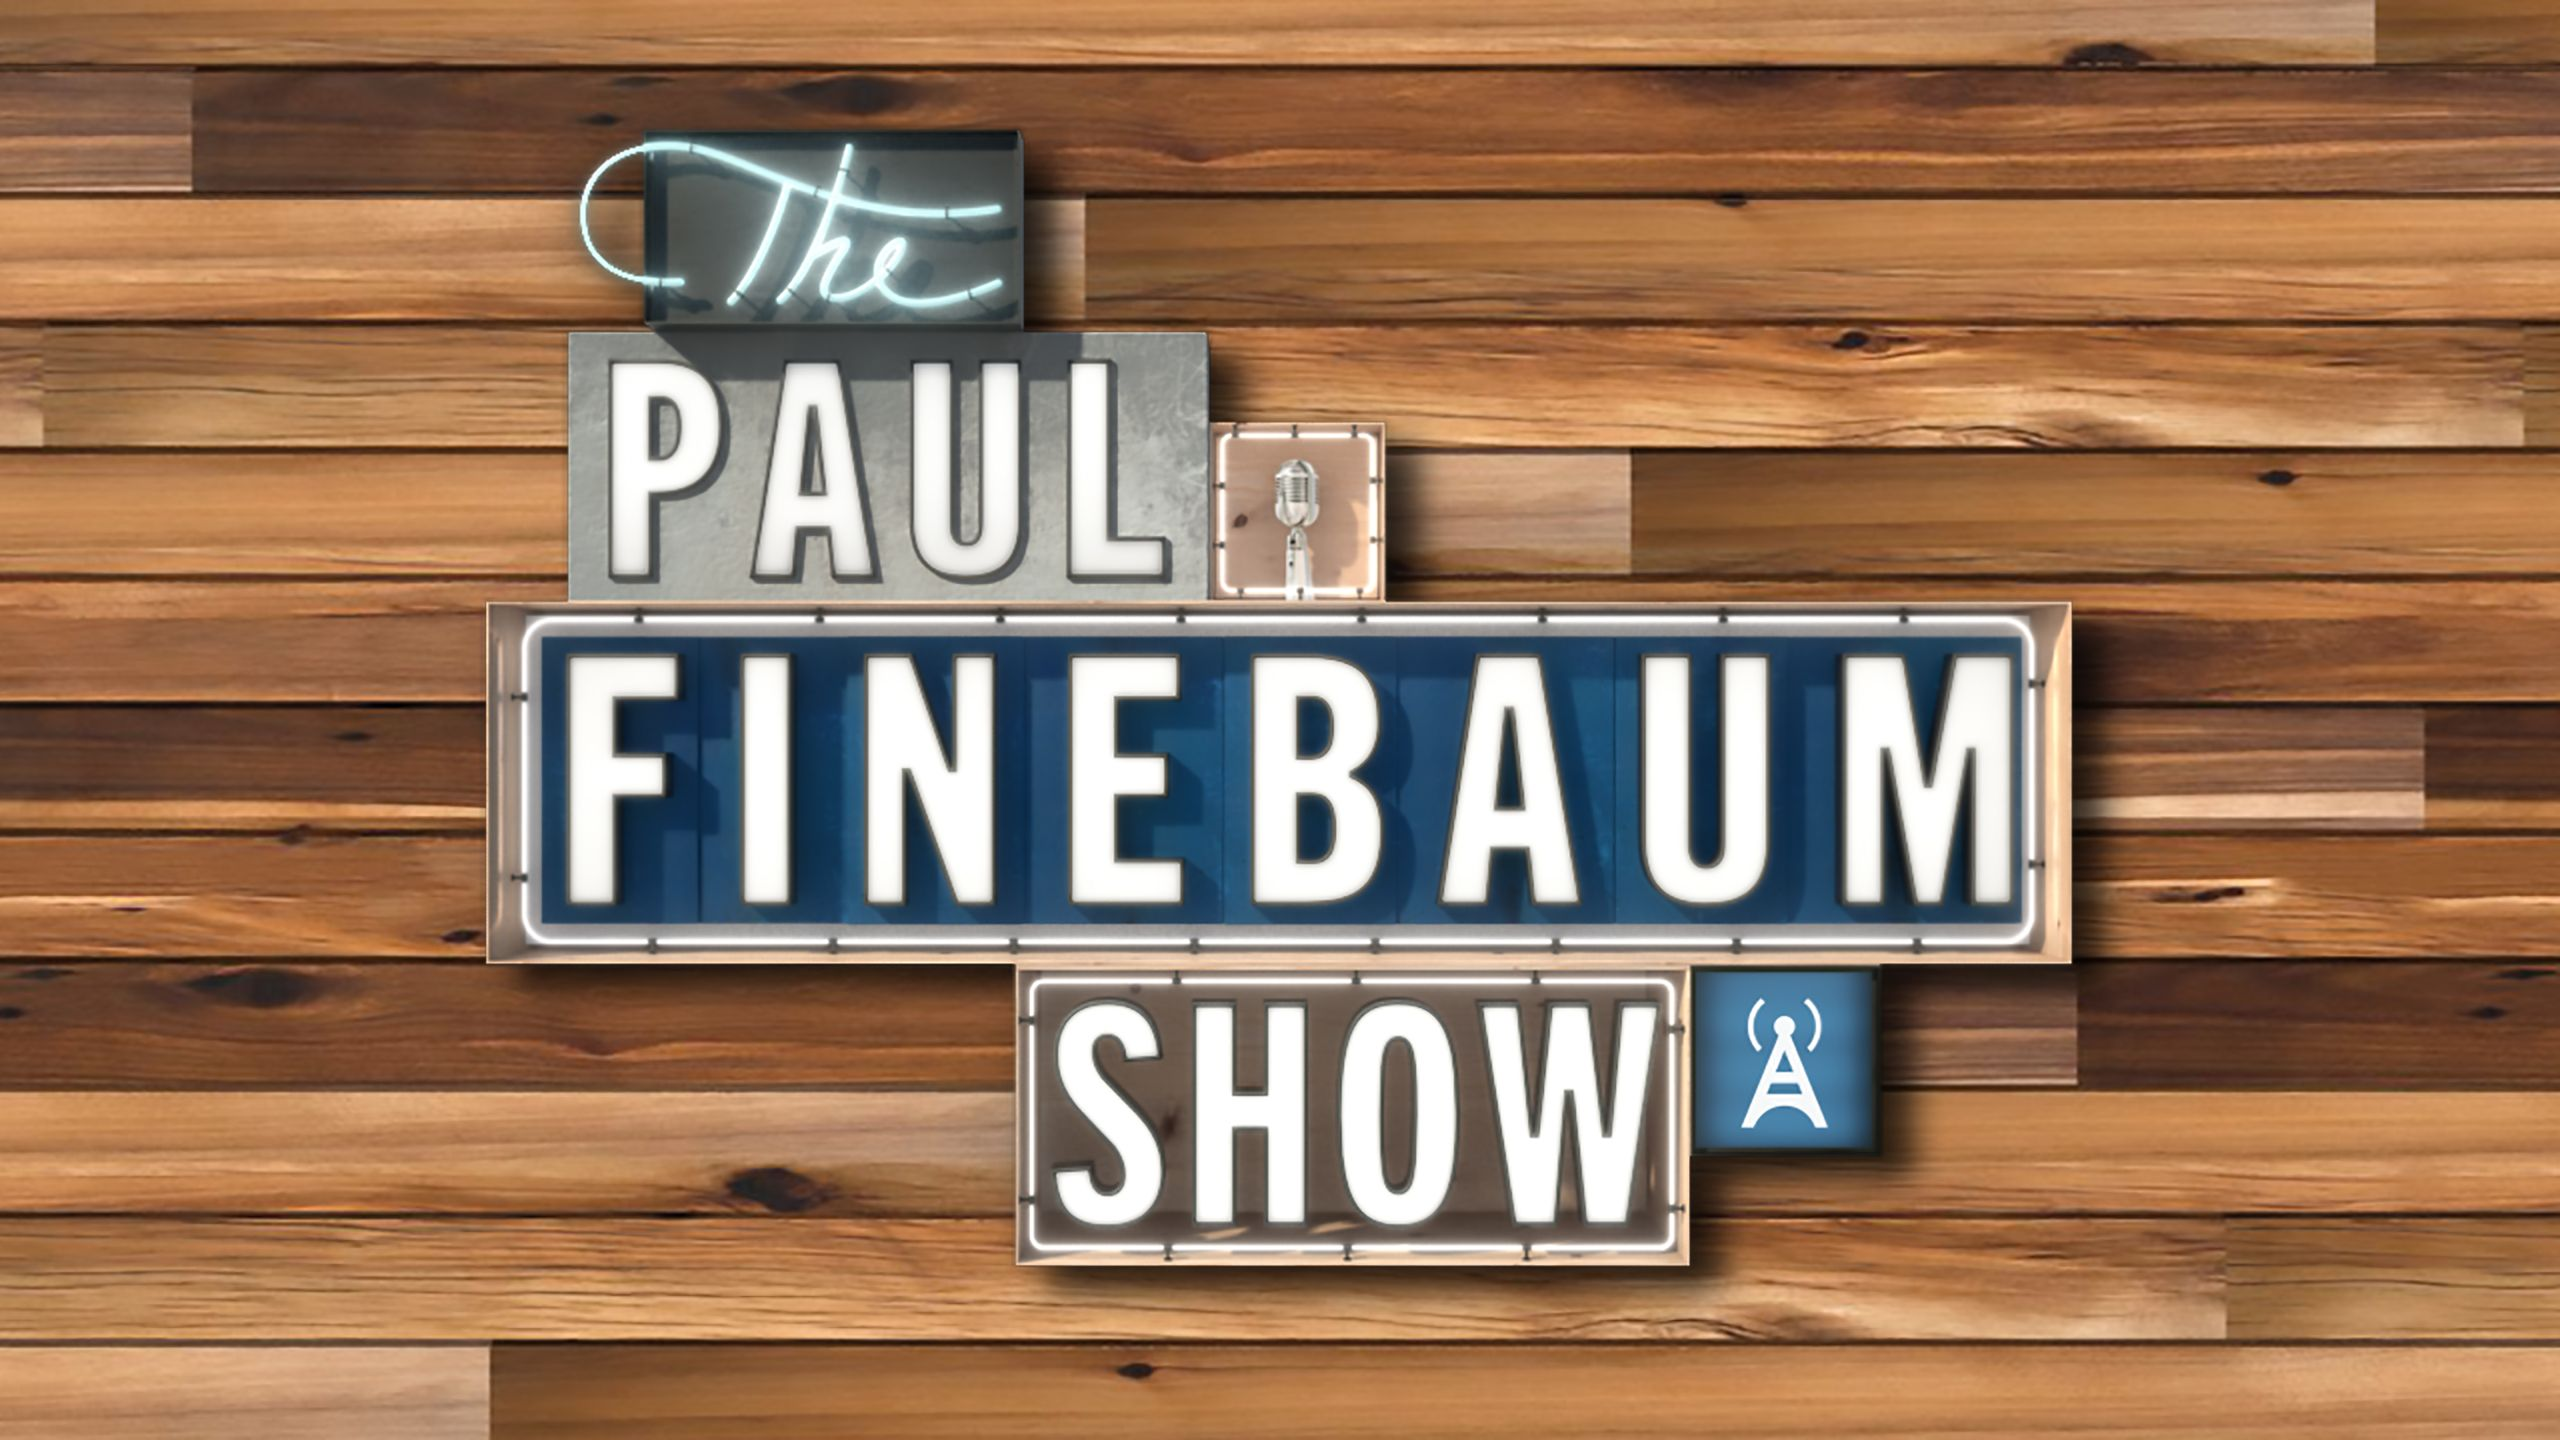 Thu, 10/19 - The Paul Finebaum Show